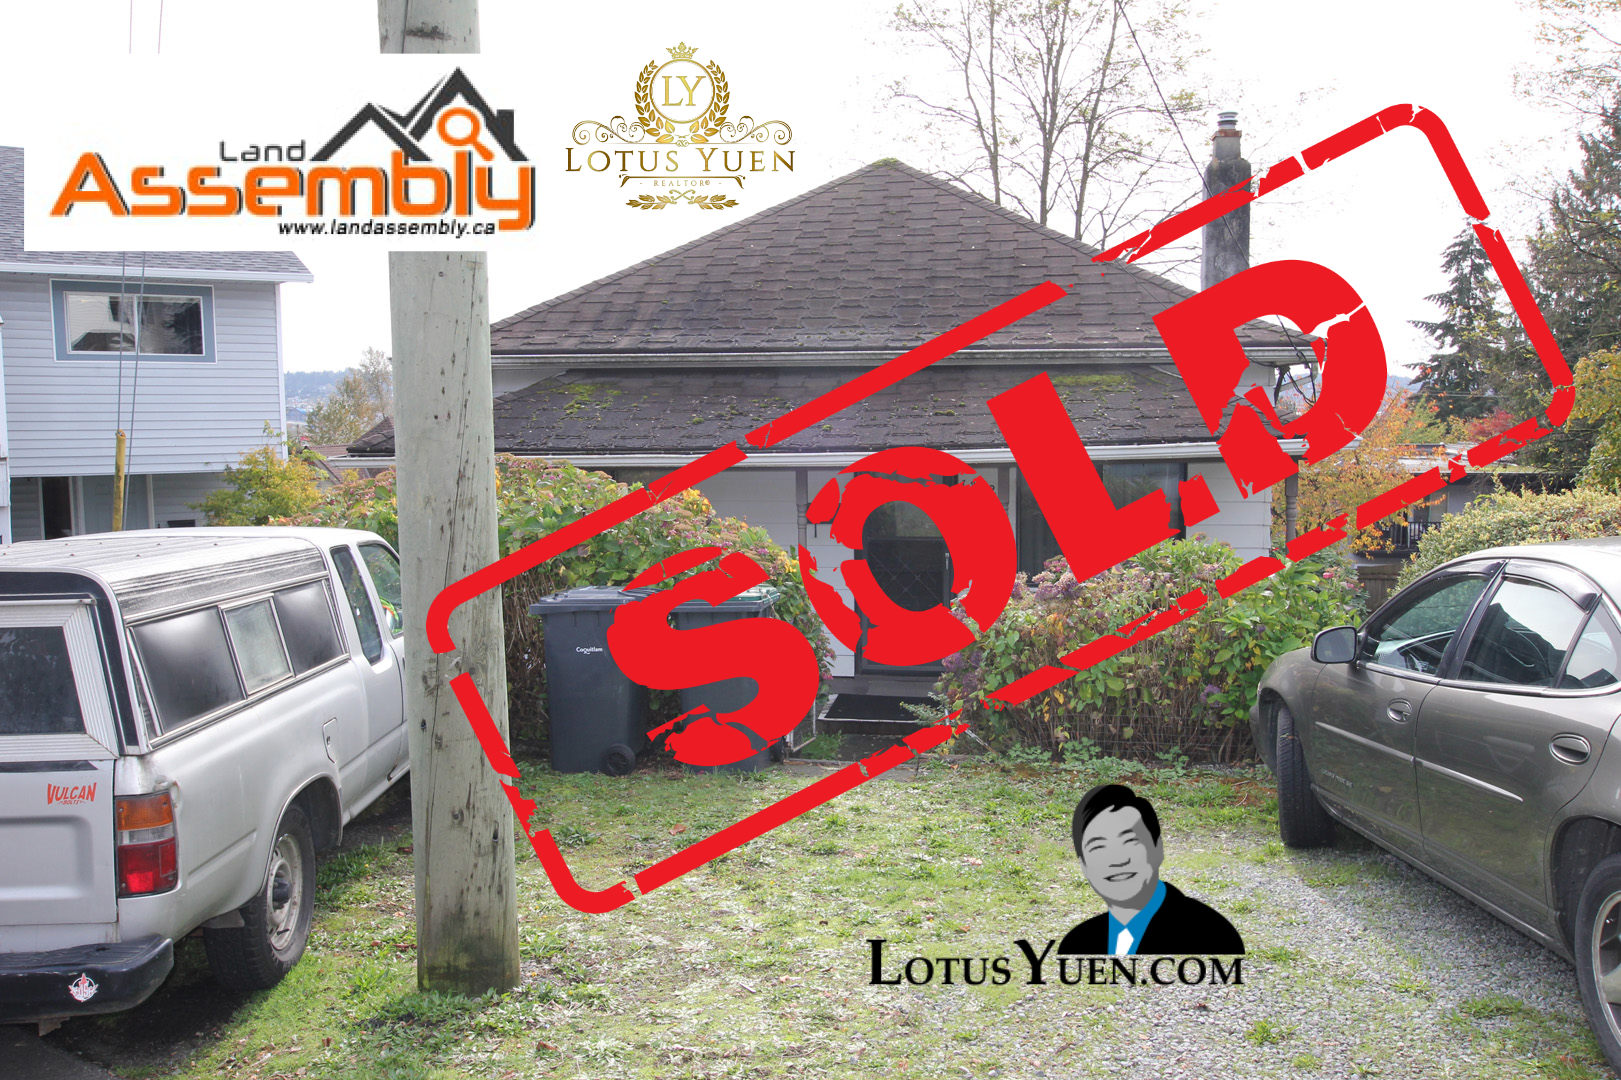 Coquitlam Land Assembly Real Estate Agent Lotus Yuen